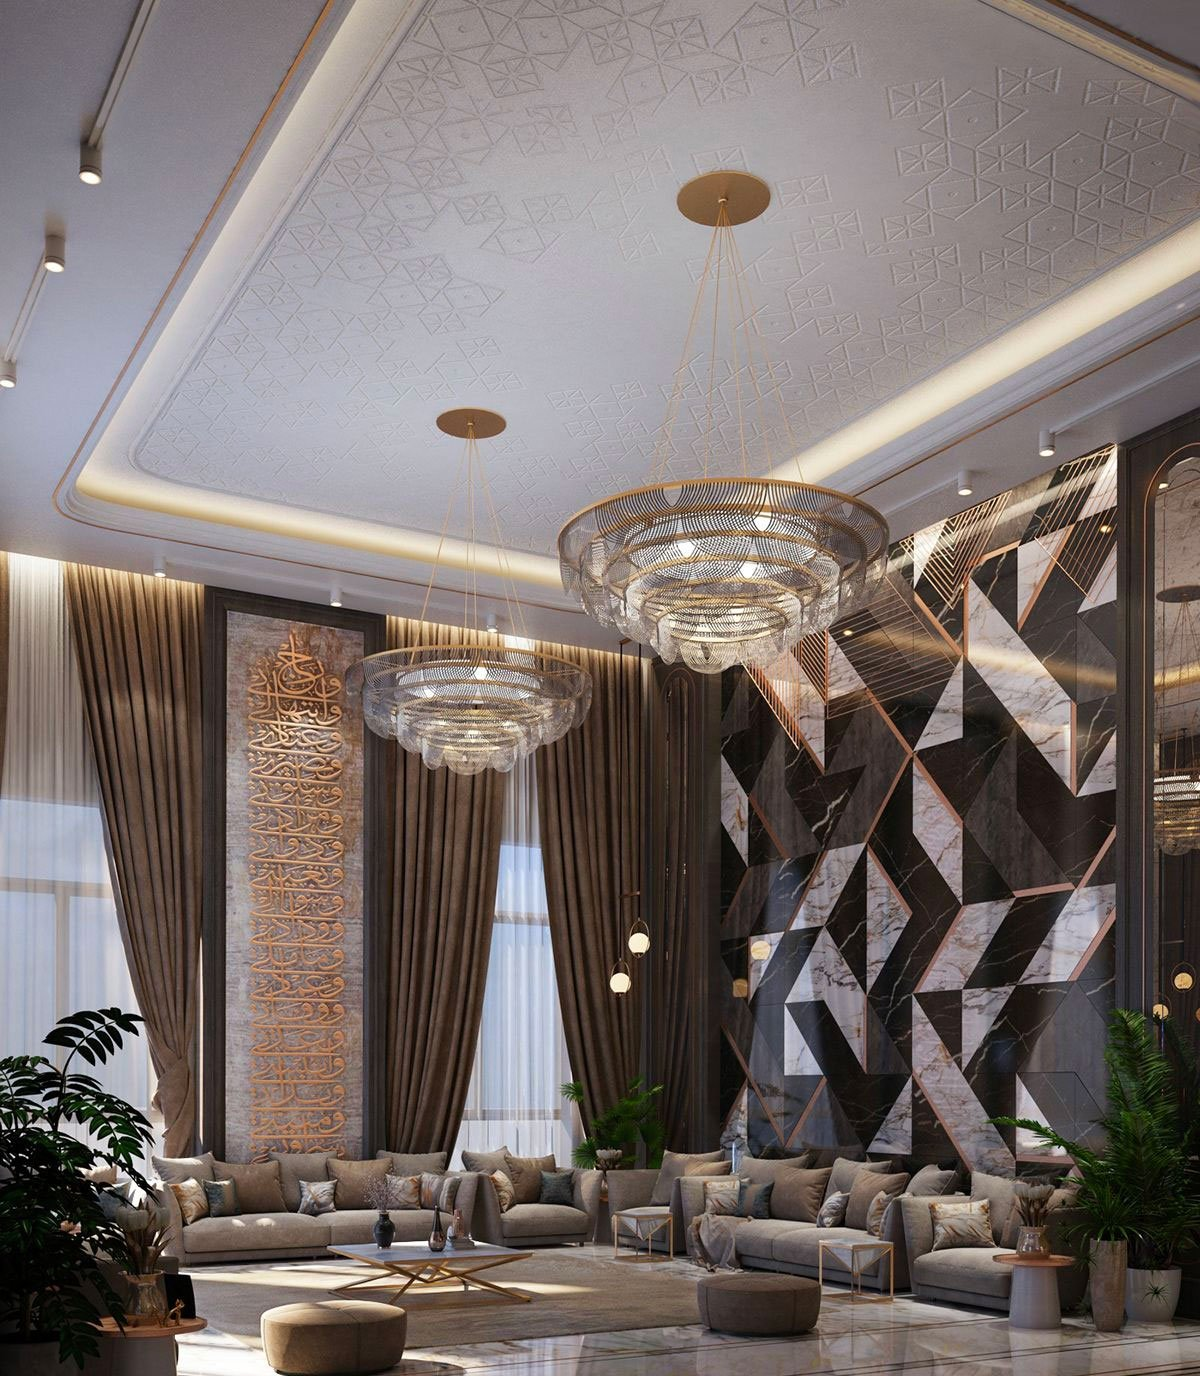 EsionSilenceProperty - Yellow Palace - Shining Star - Interior - Dining Room - After Renovation Design Style